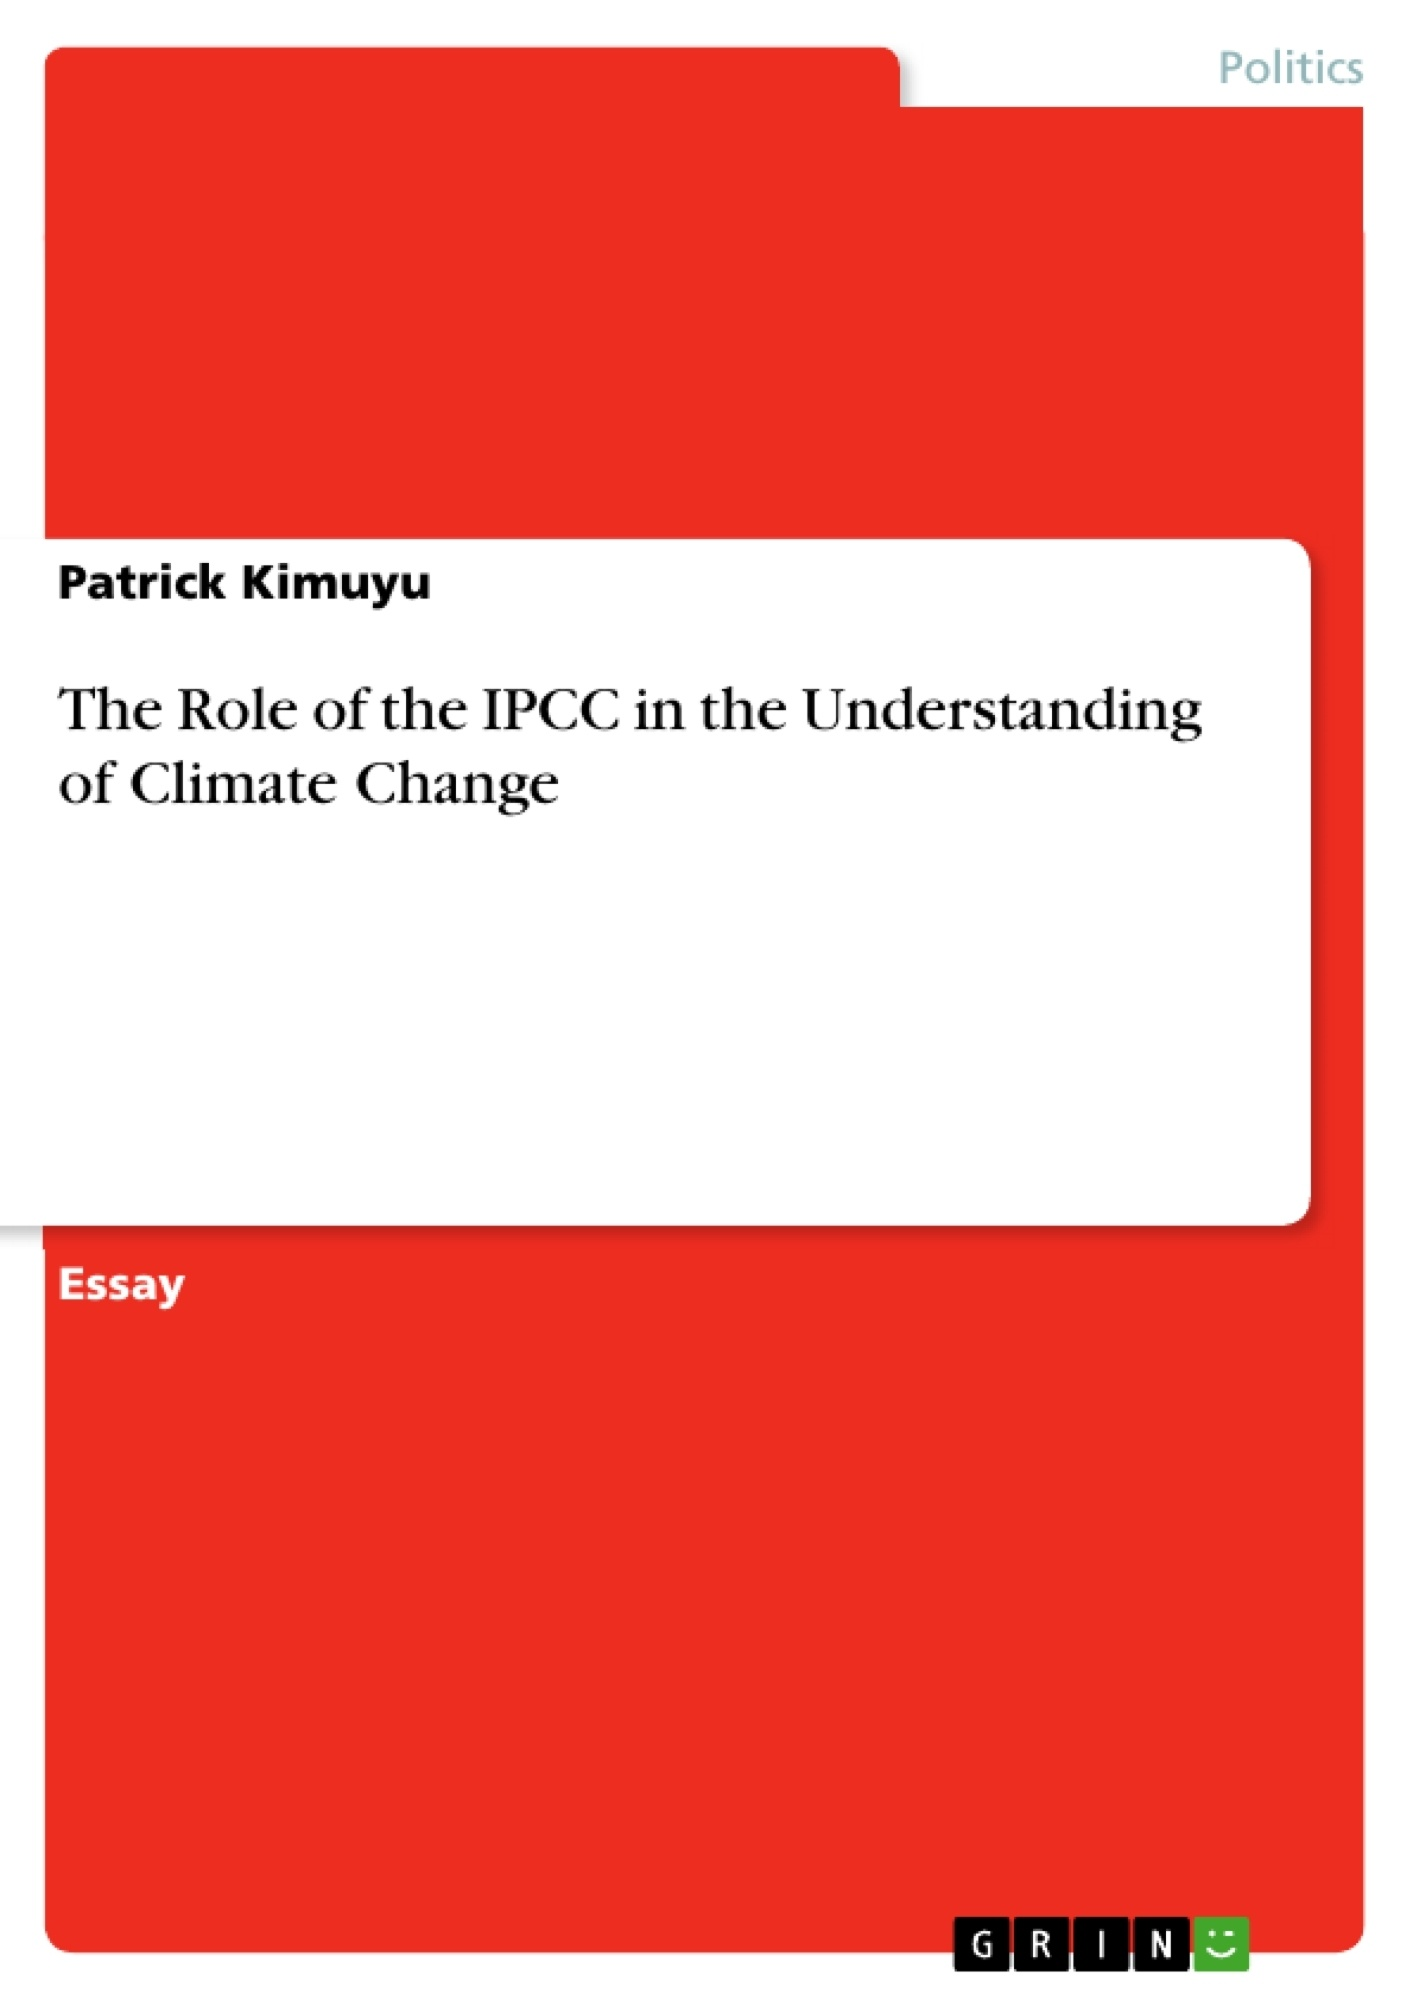 Title: The Role of the IPCC in the Understanding of Climate Change